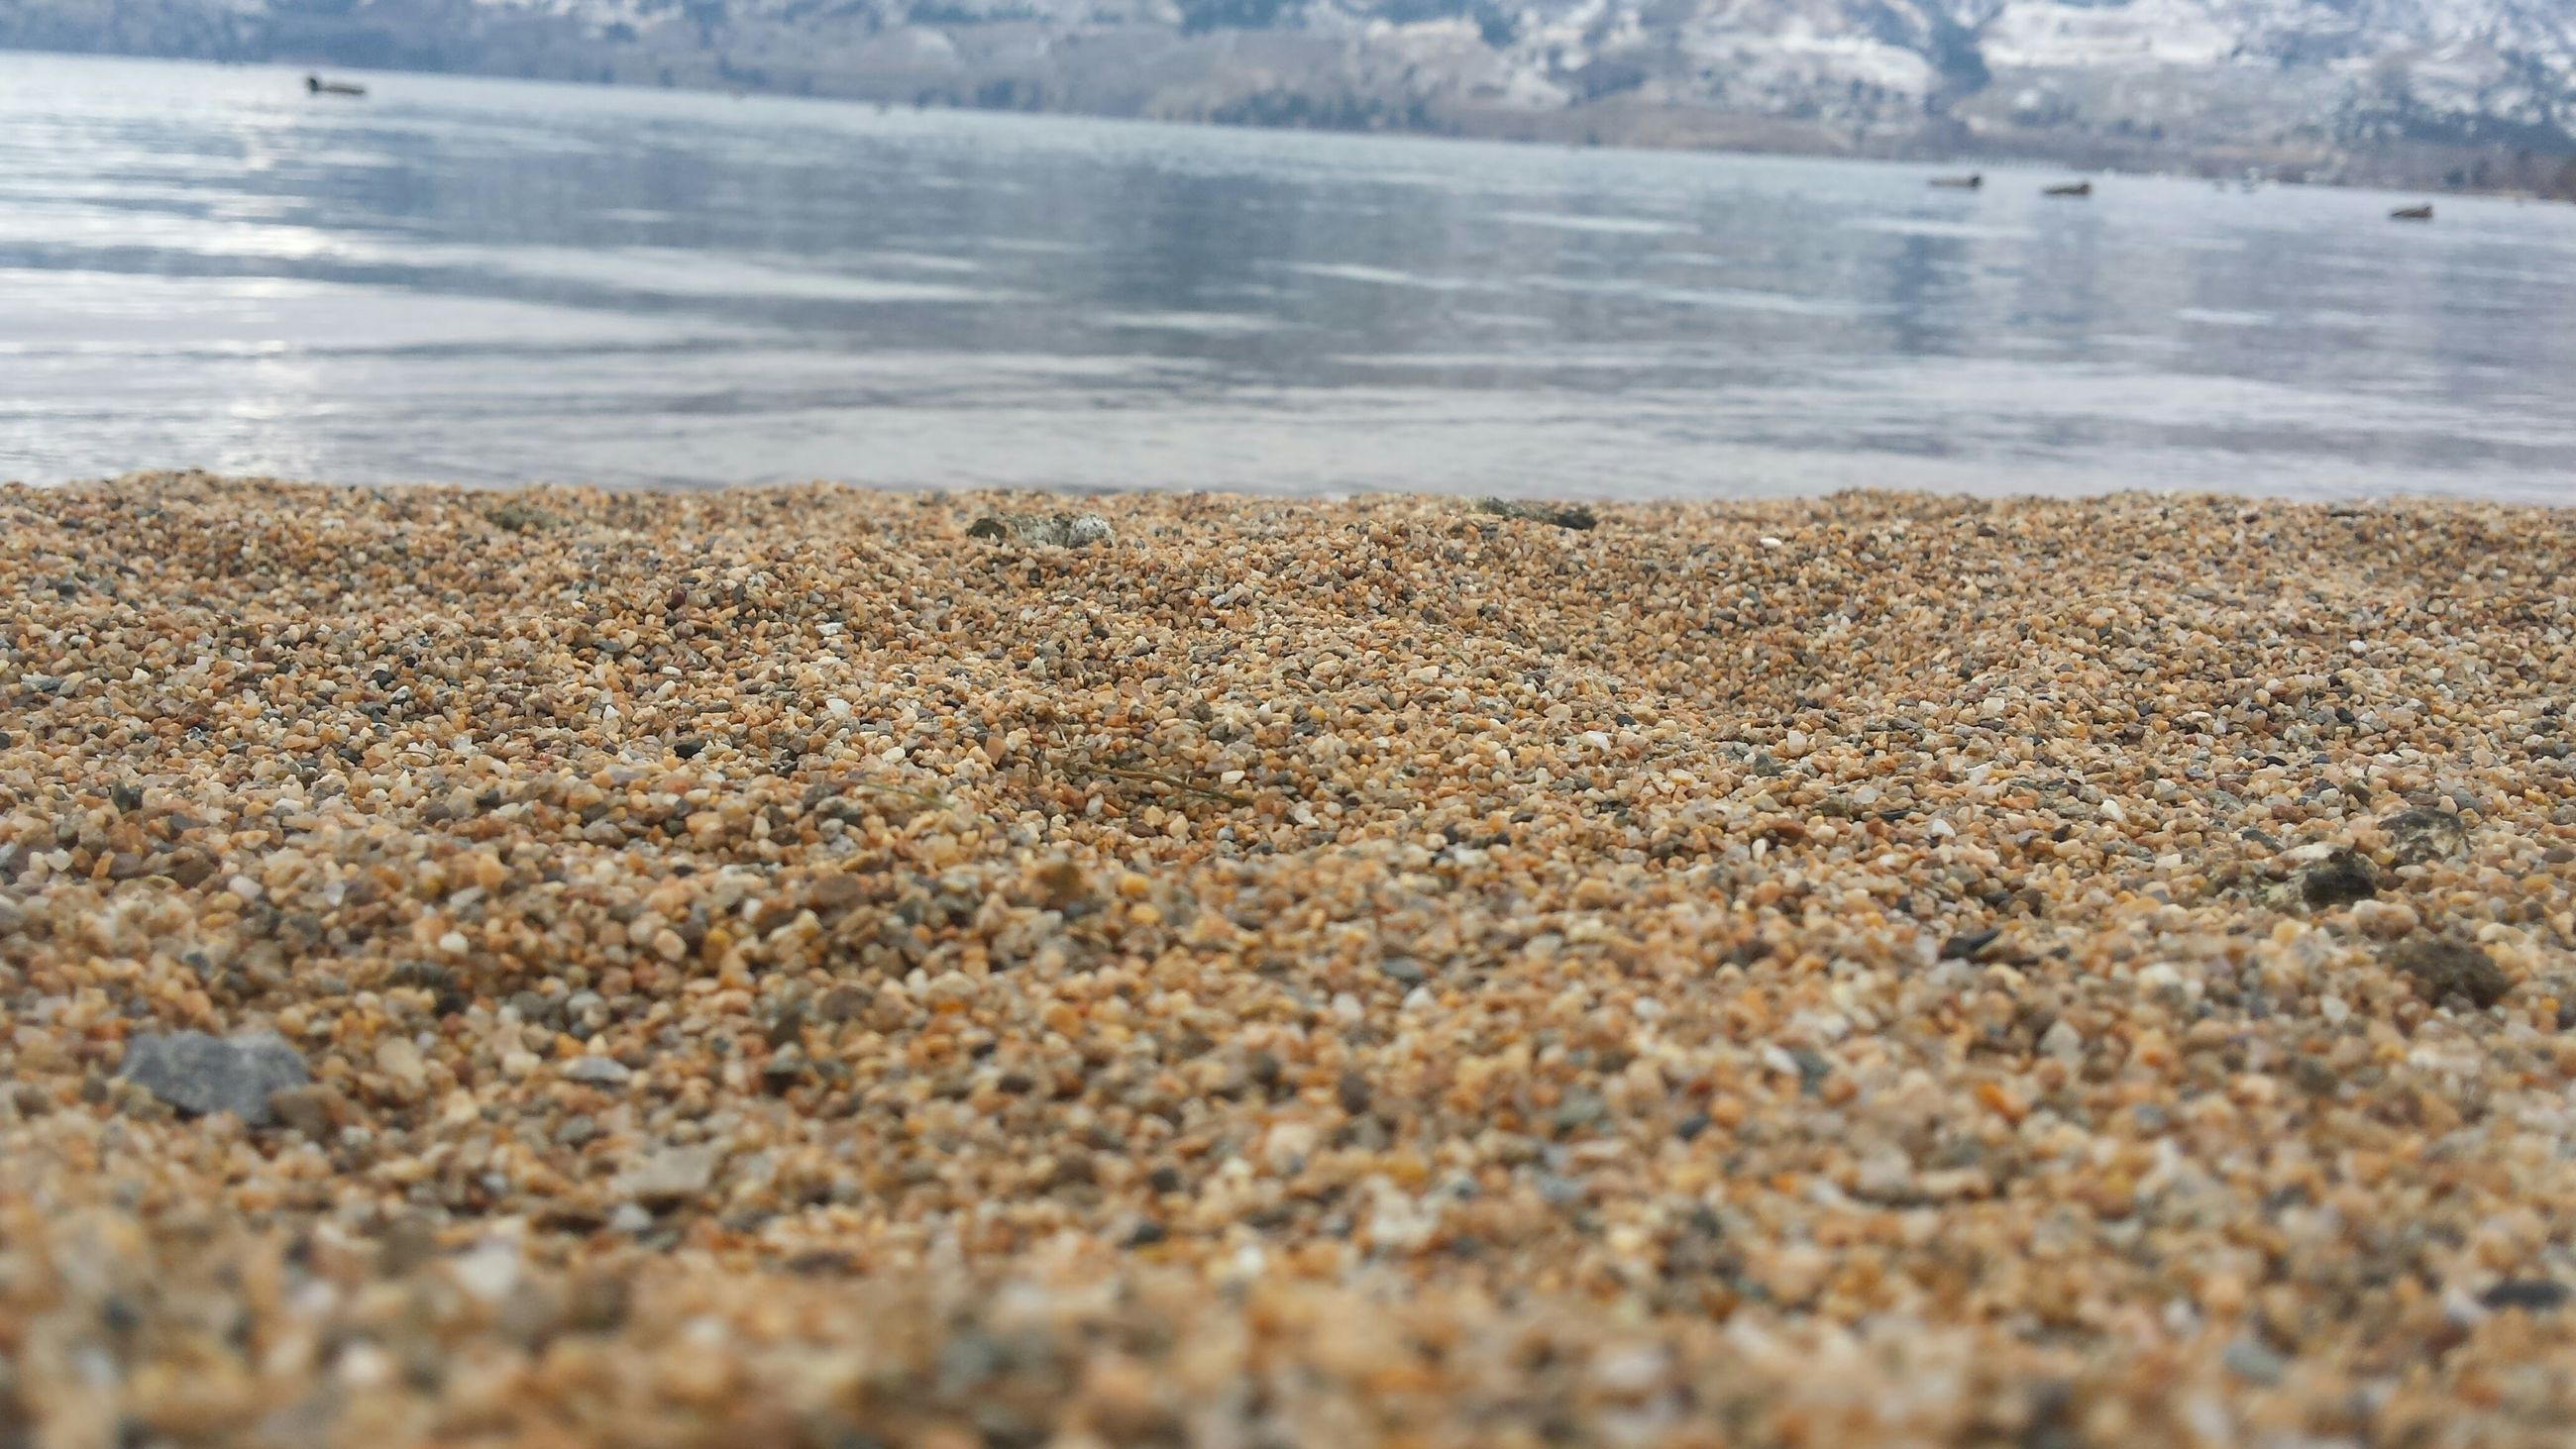 beach, water, shore, sand, tranquility, surface level, sea, tranquil scene, nature, scenics, beauty in nature, pebble, sky, day, idyllic, selective focus, outdoors, coastline, no people, remote